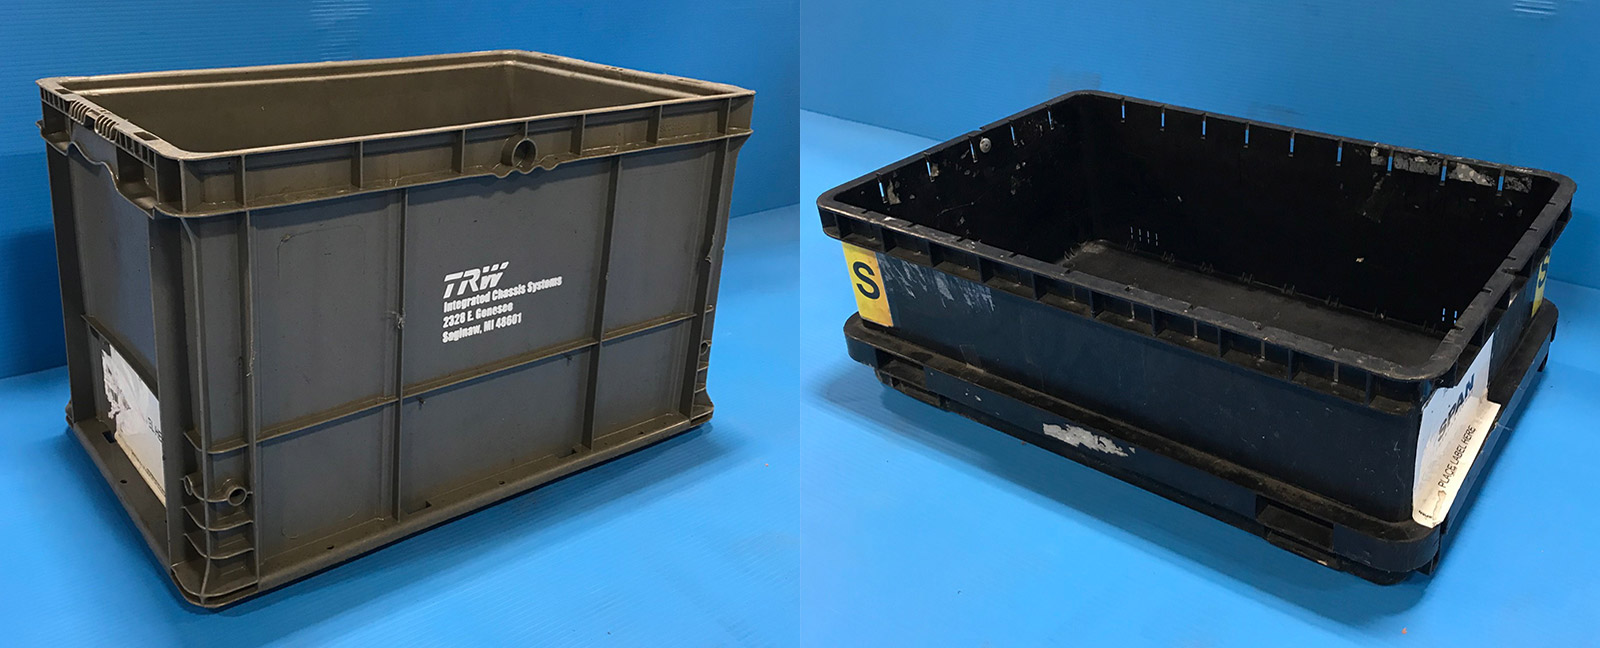 flash-sale-containers.jpg